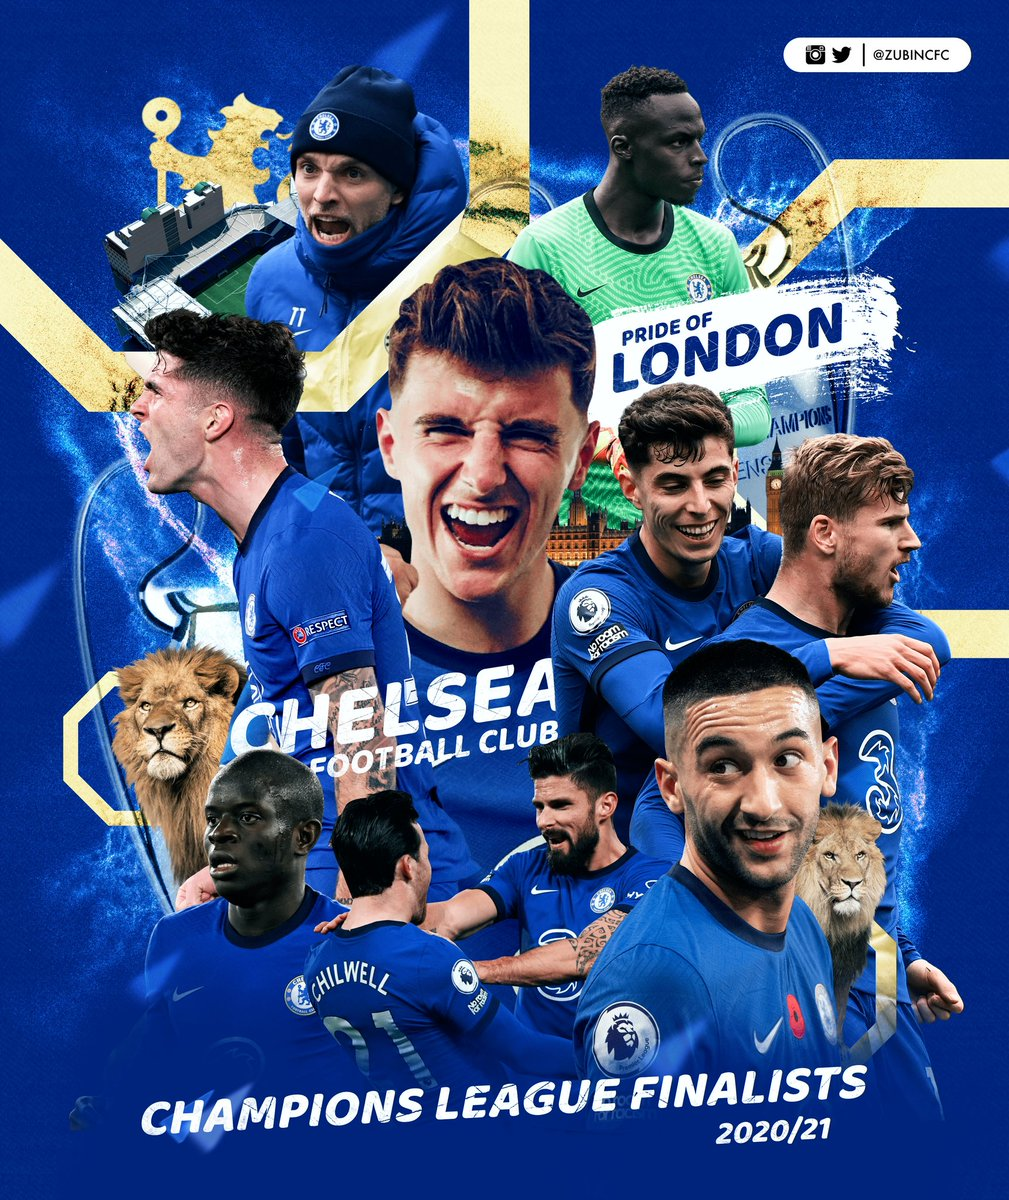 Still can't believe we are going to Istanbul 🤩🔥  #Chelsea #smsports #UCL https://t.co/6KKnlYJX6J